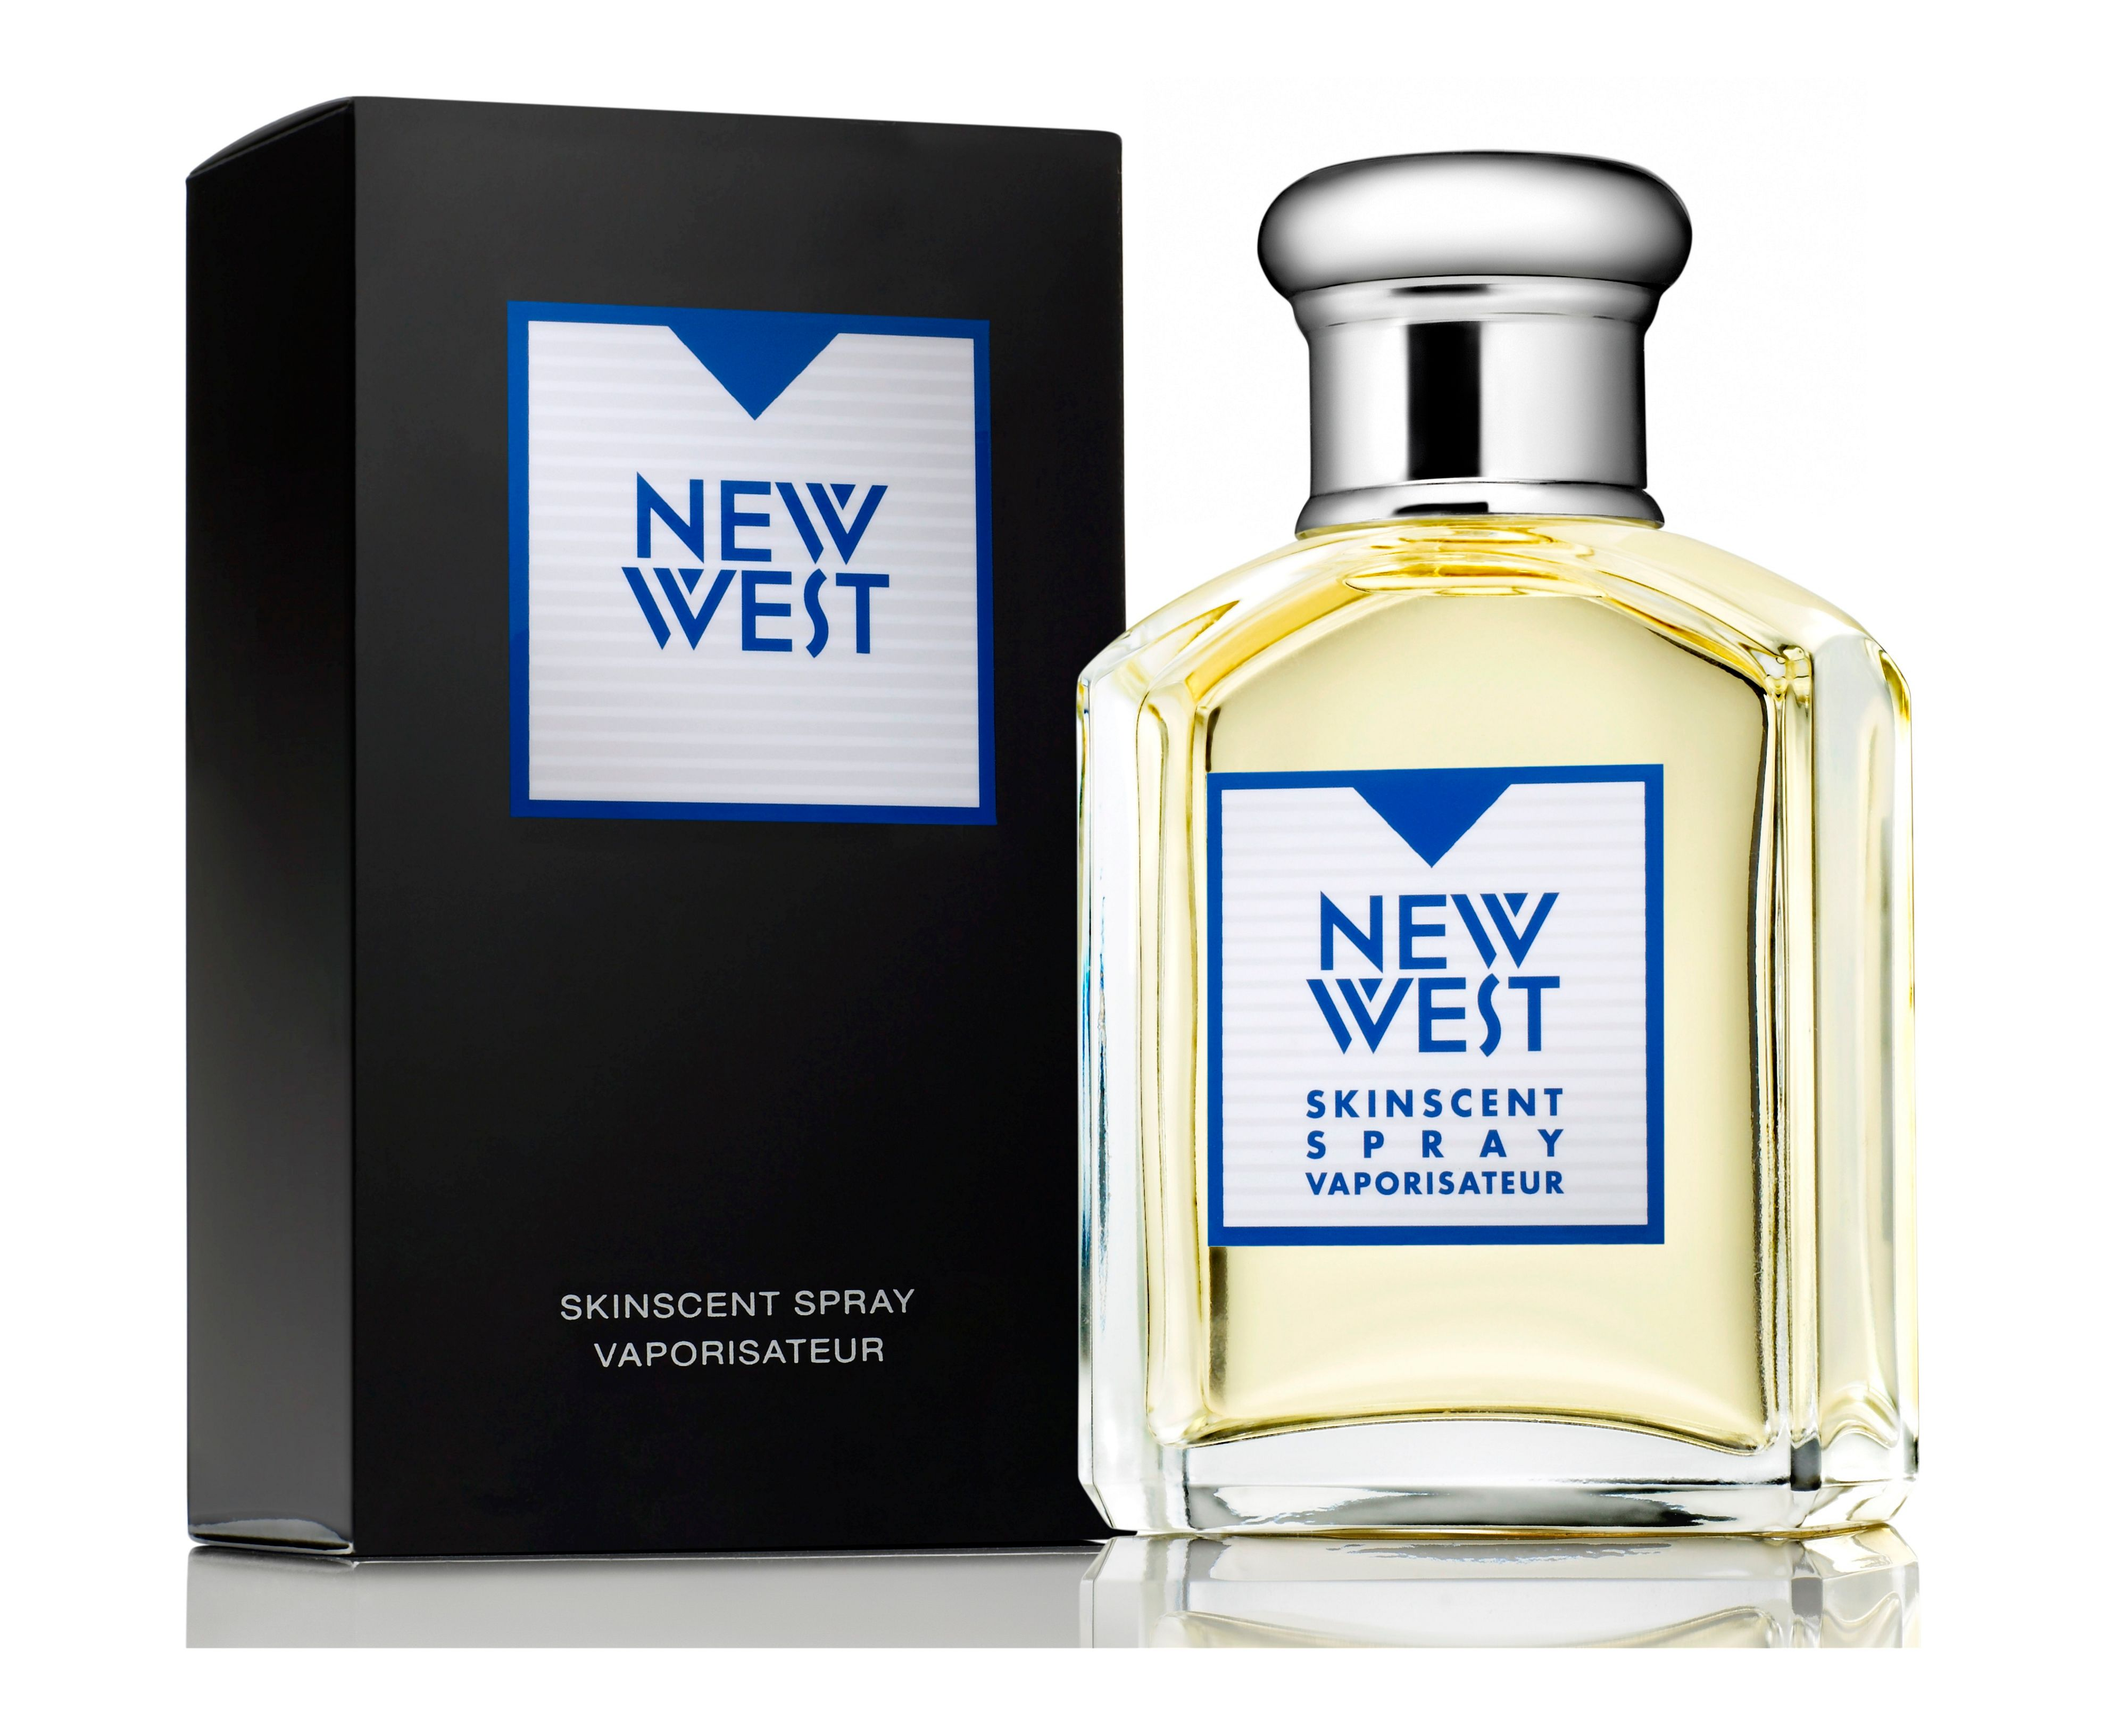 New West Skinscent Spray 100ml